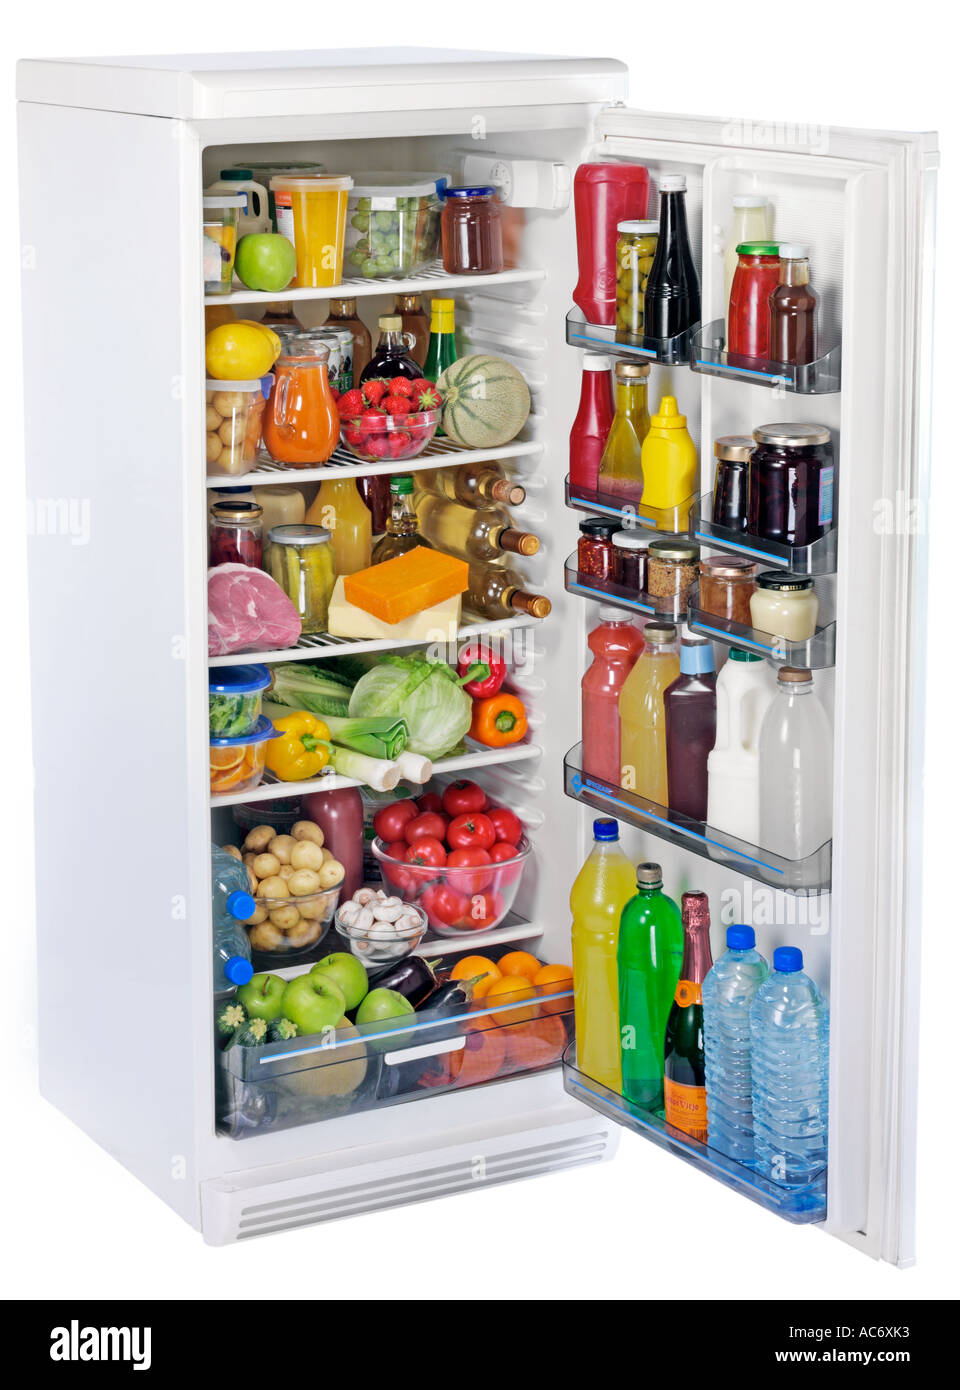 OPEN FULL FRIDGE CUT OUT Stock Photo, Royalty Free Image